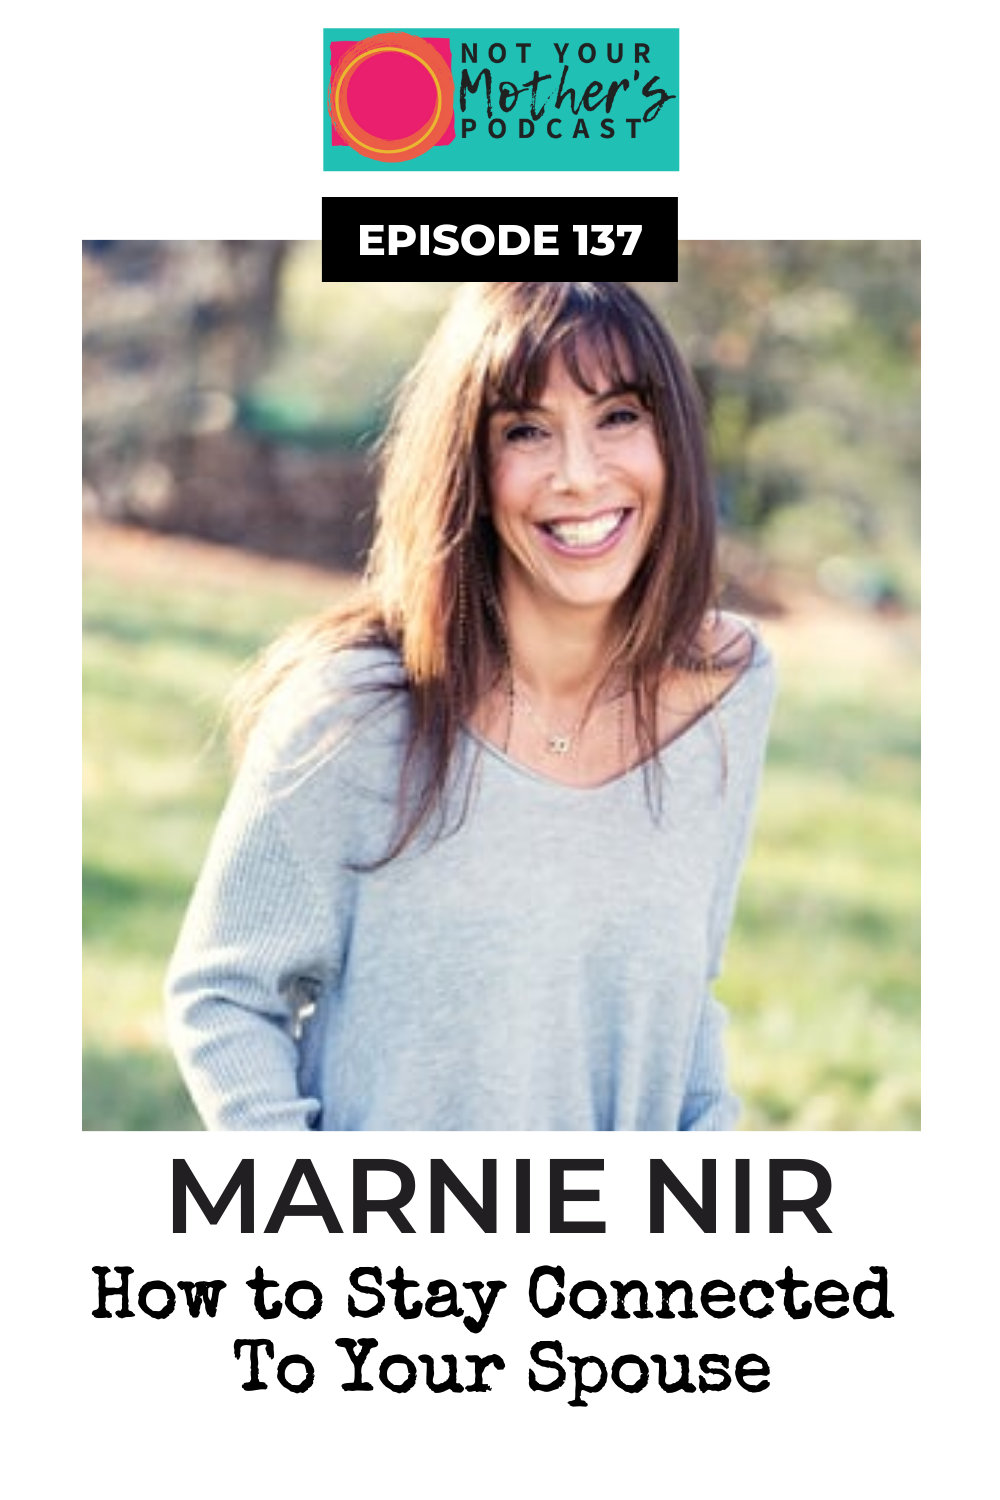 Ep. 137: How to Stay Connected To Your Spouse with Marnie Nir PIN